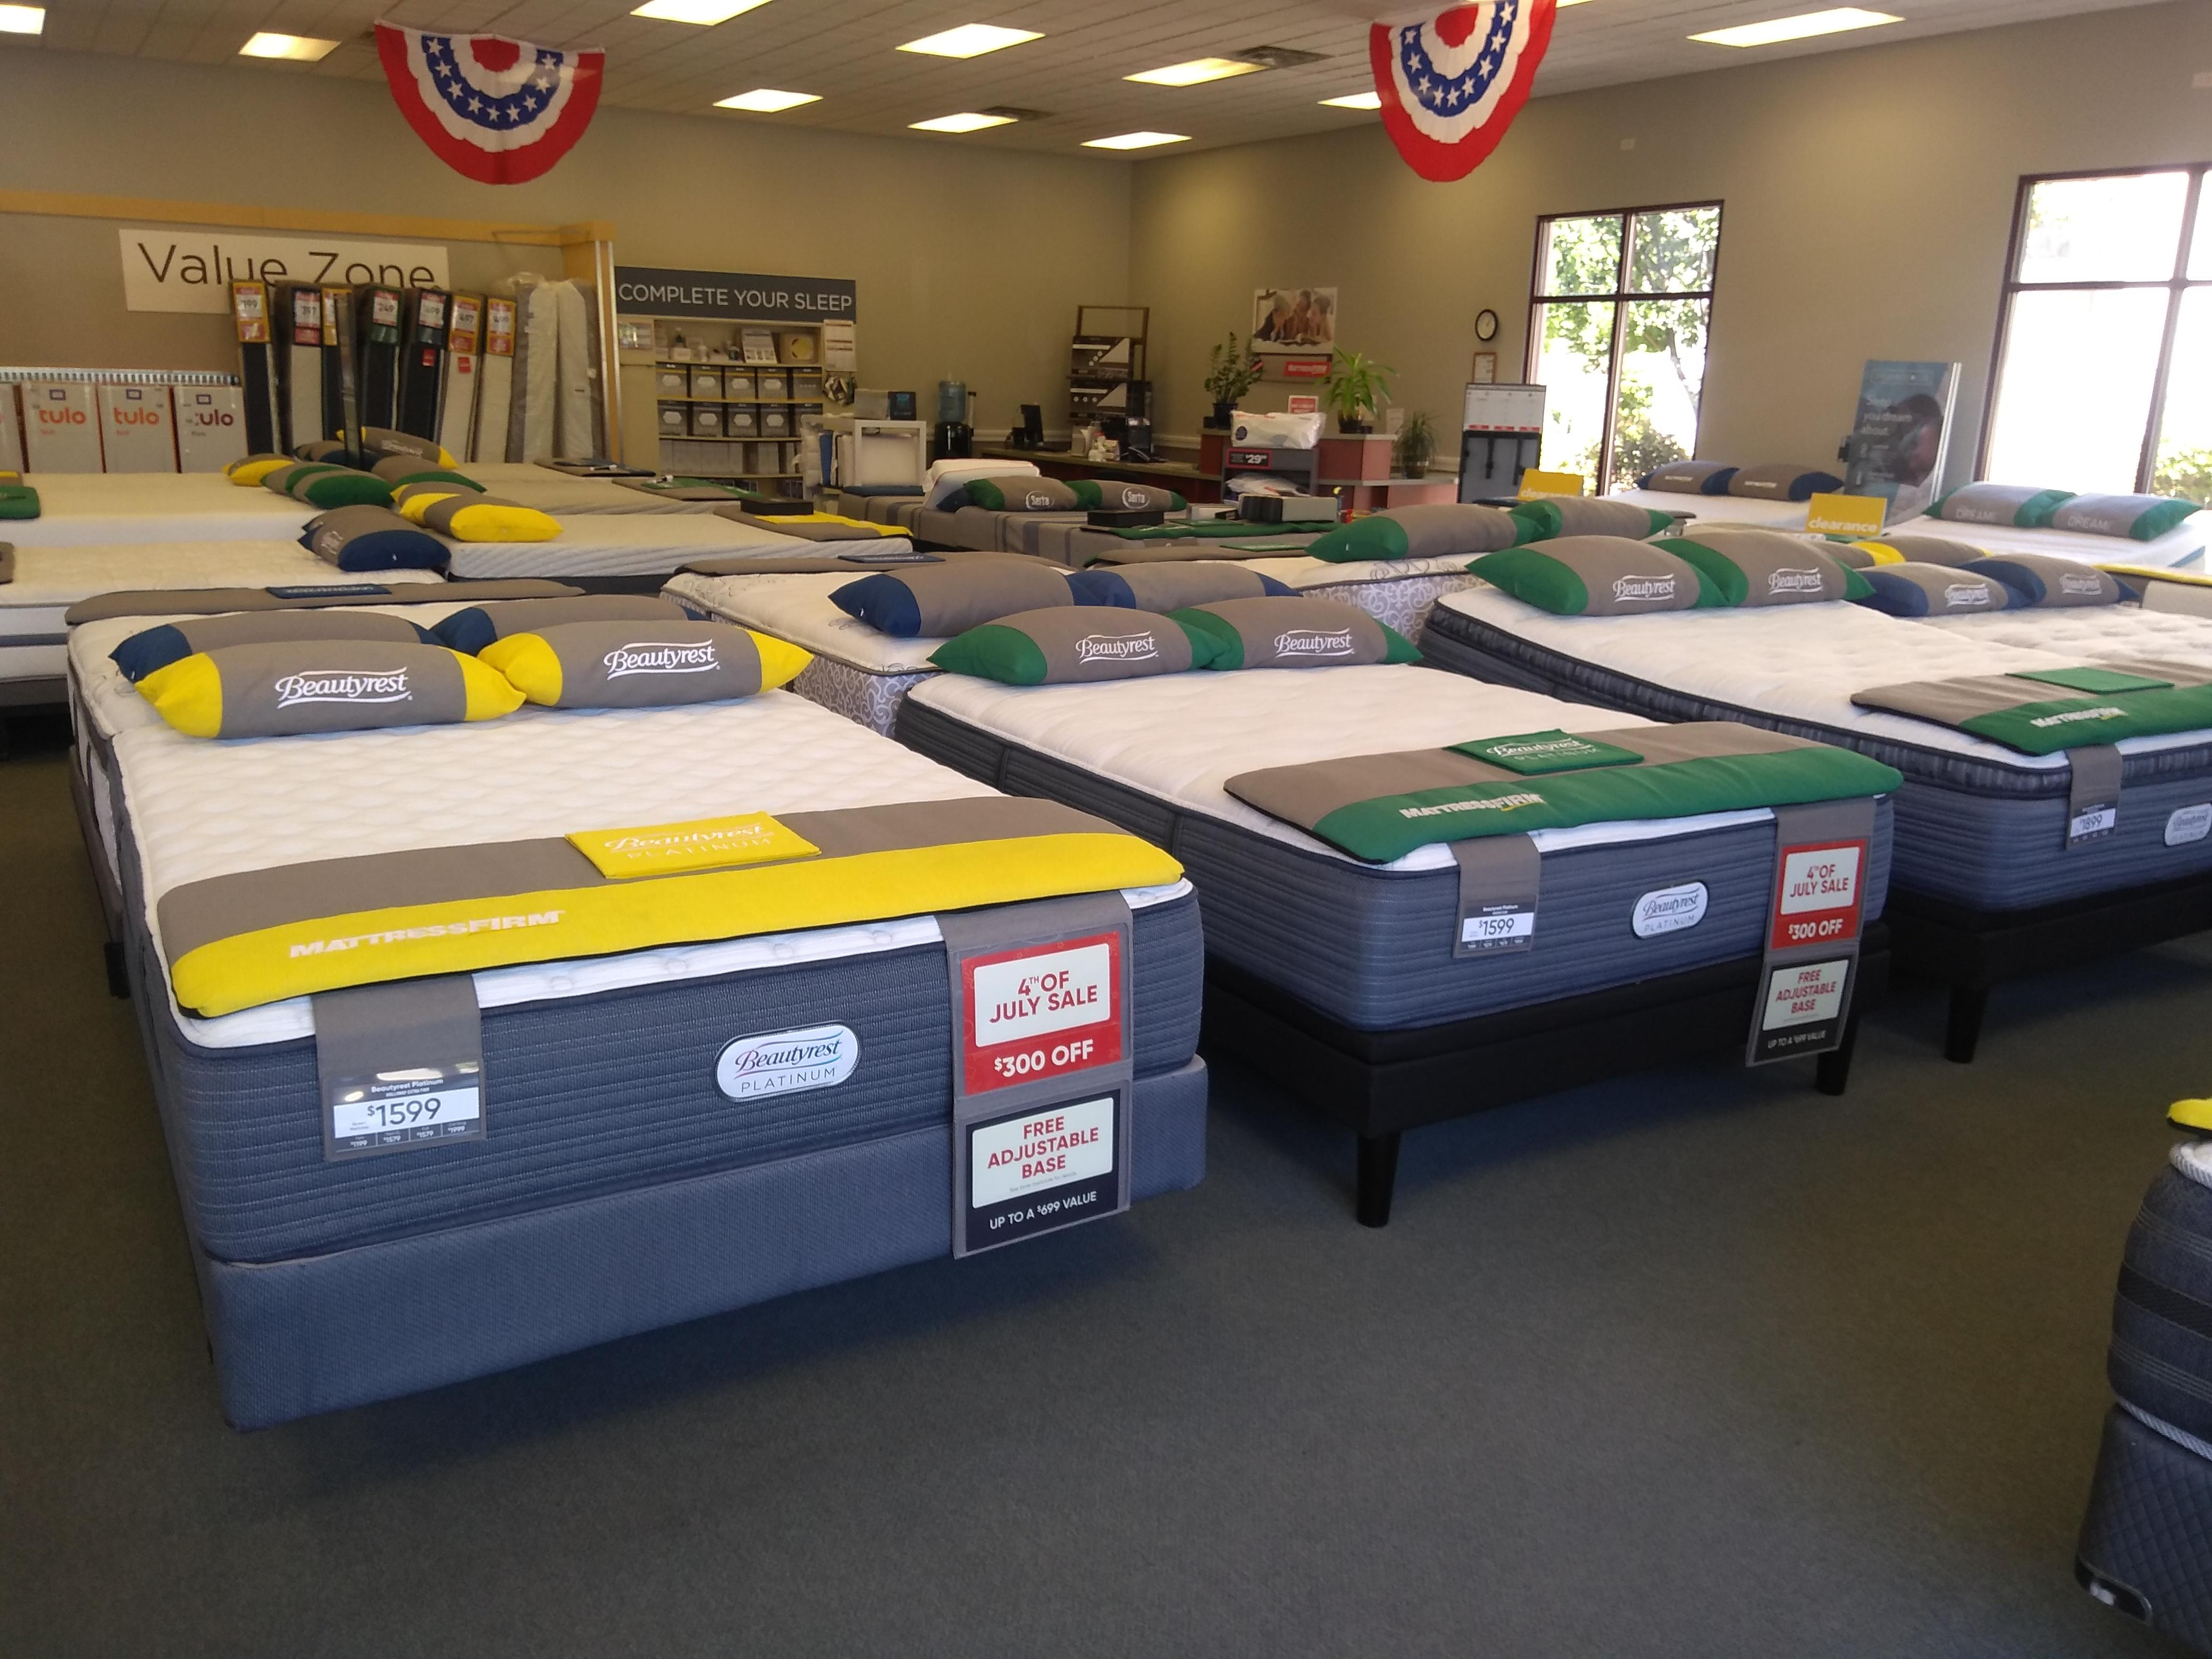 Mattress Firm Chico Forest Ave image 2